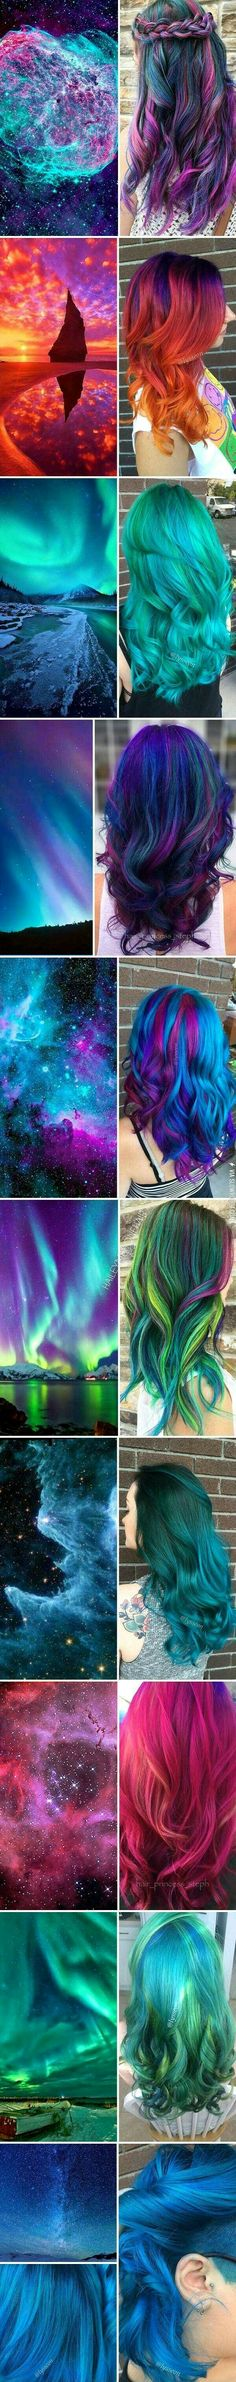 Vibrant Colorful Hair  #colorfulhair #hair